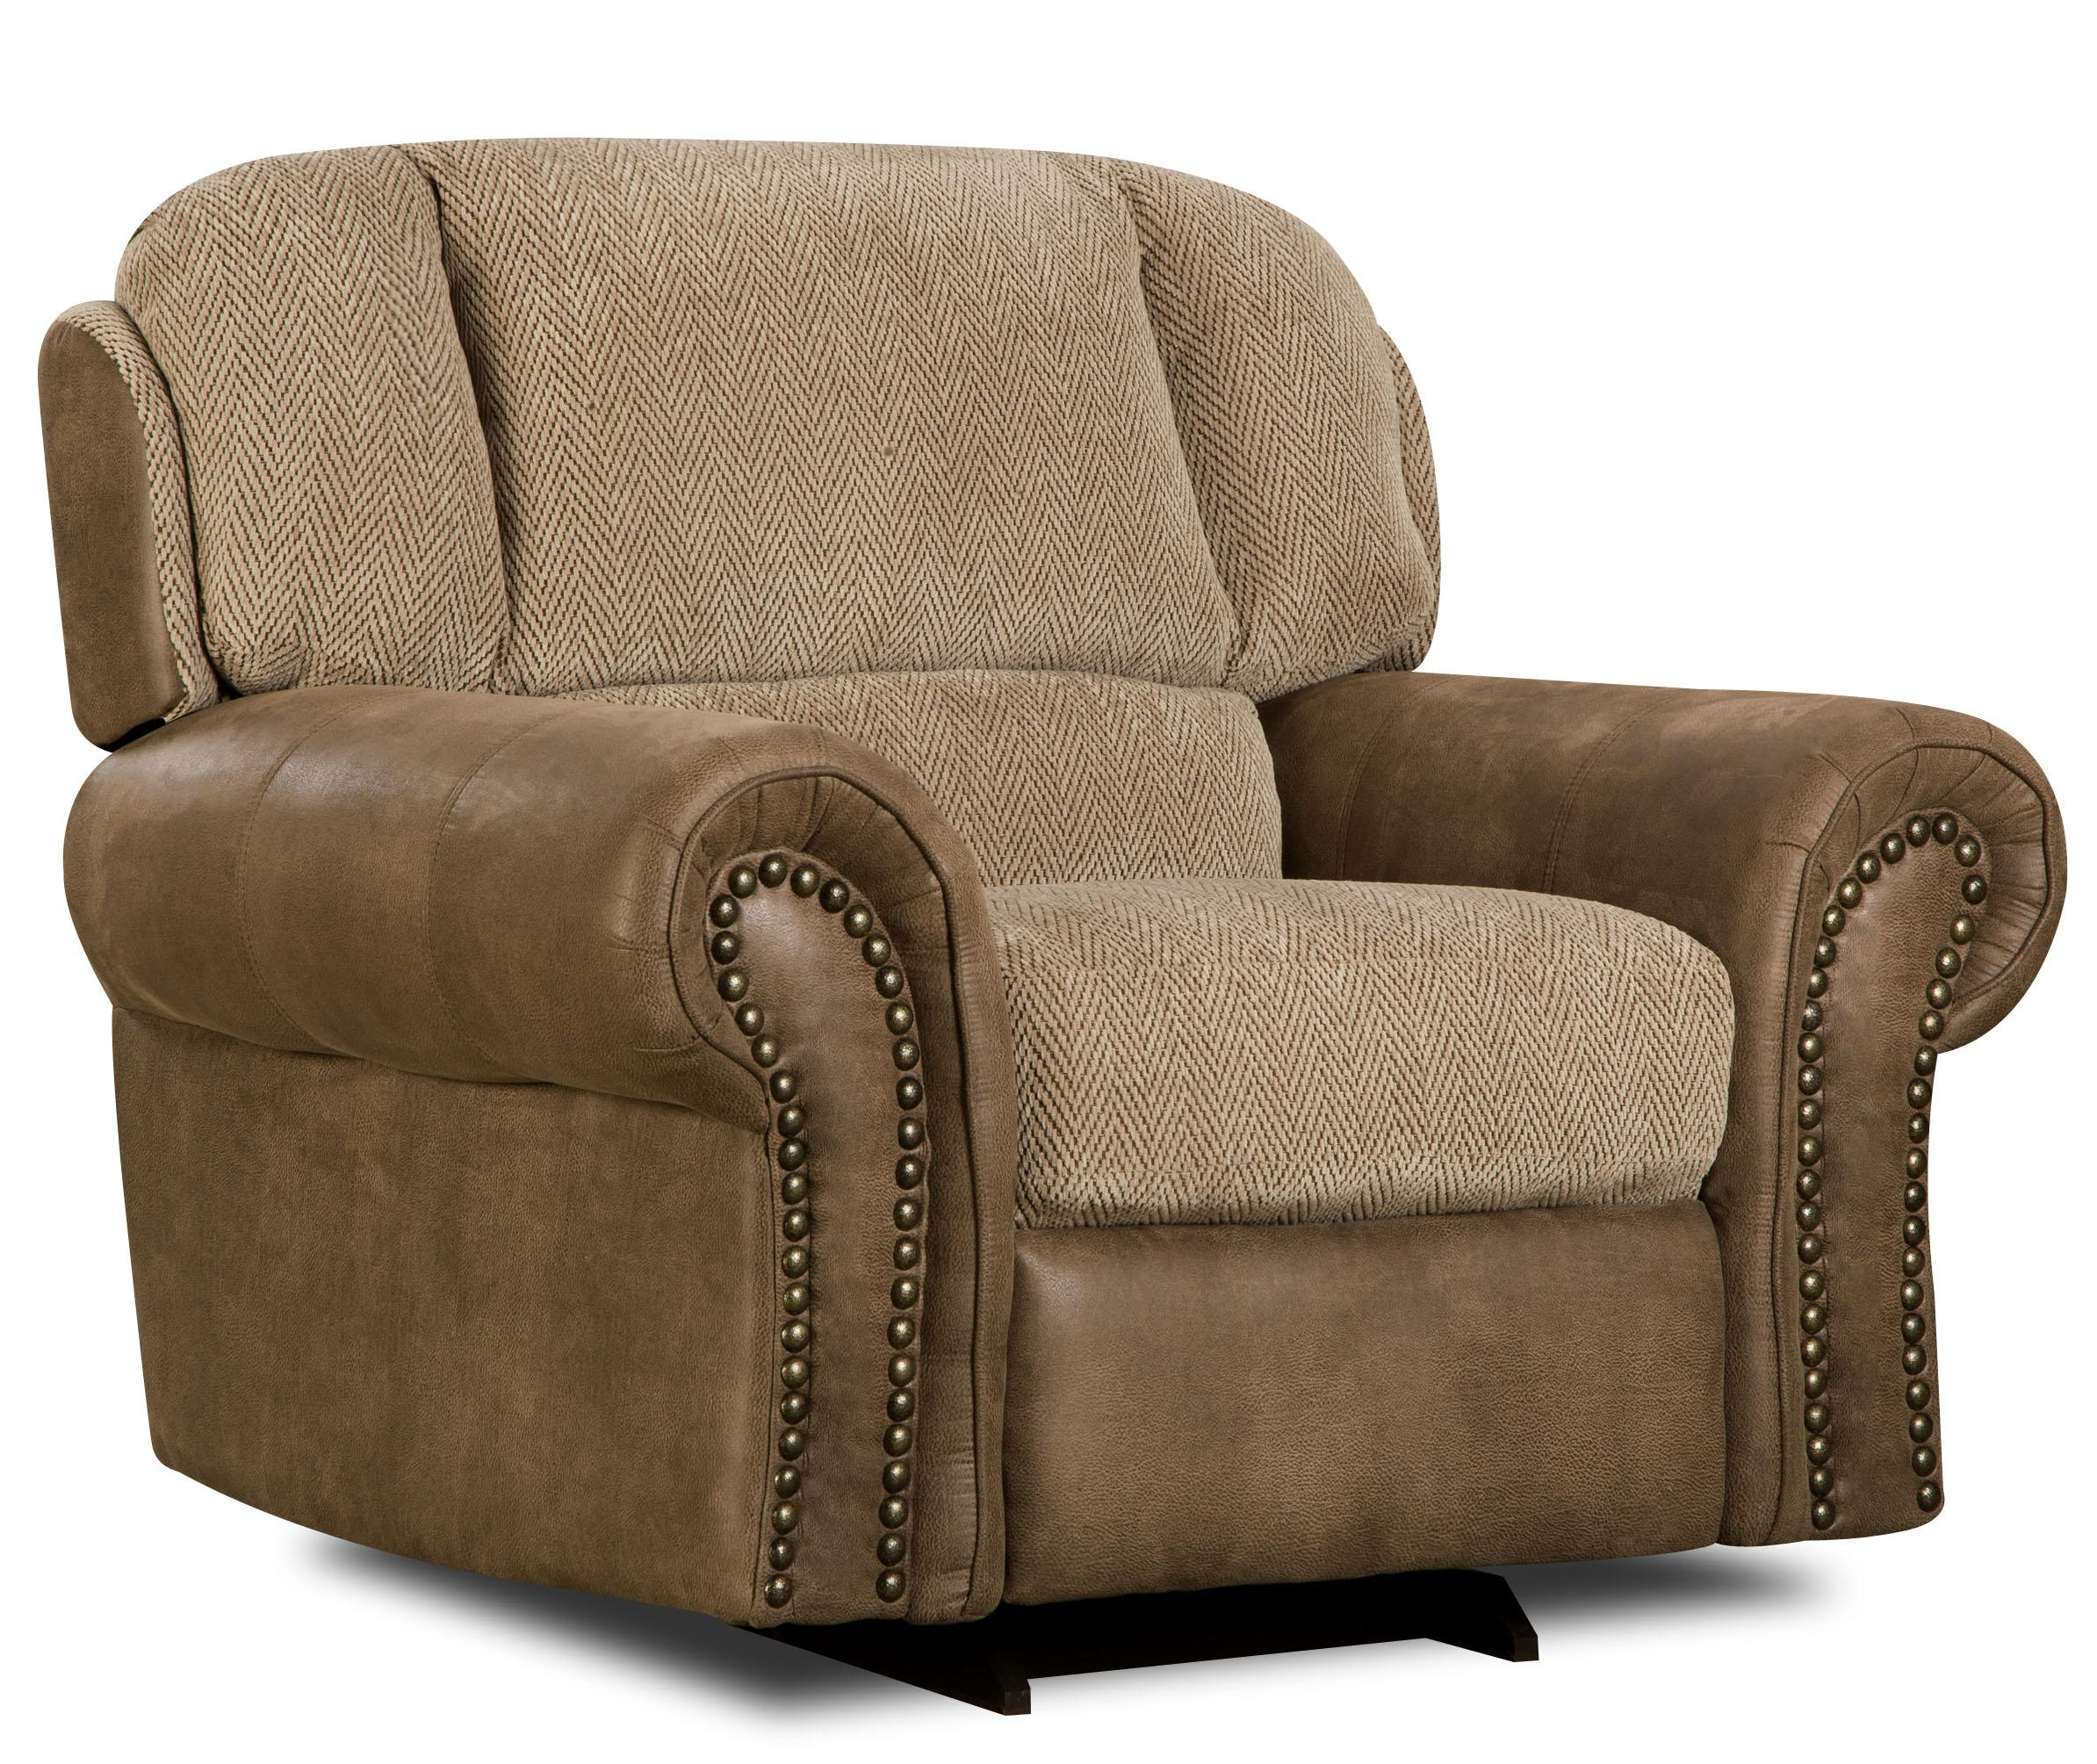 27A0 Chair and Footrest by Corinthian at Story & Lee Furniture